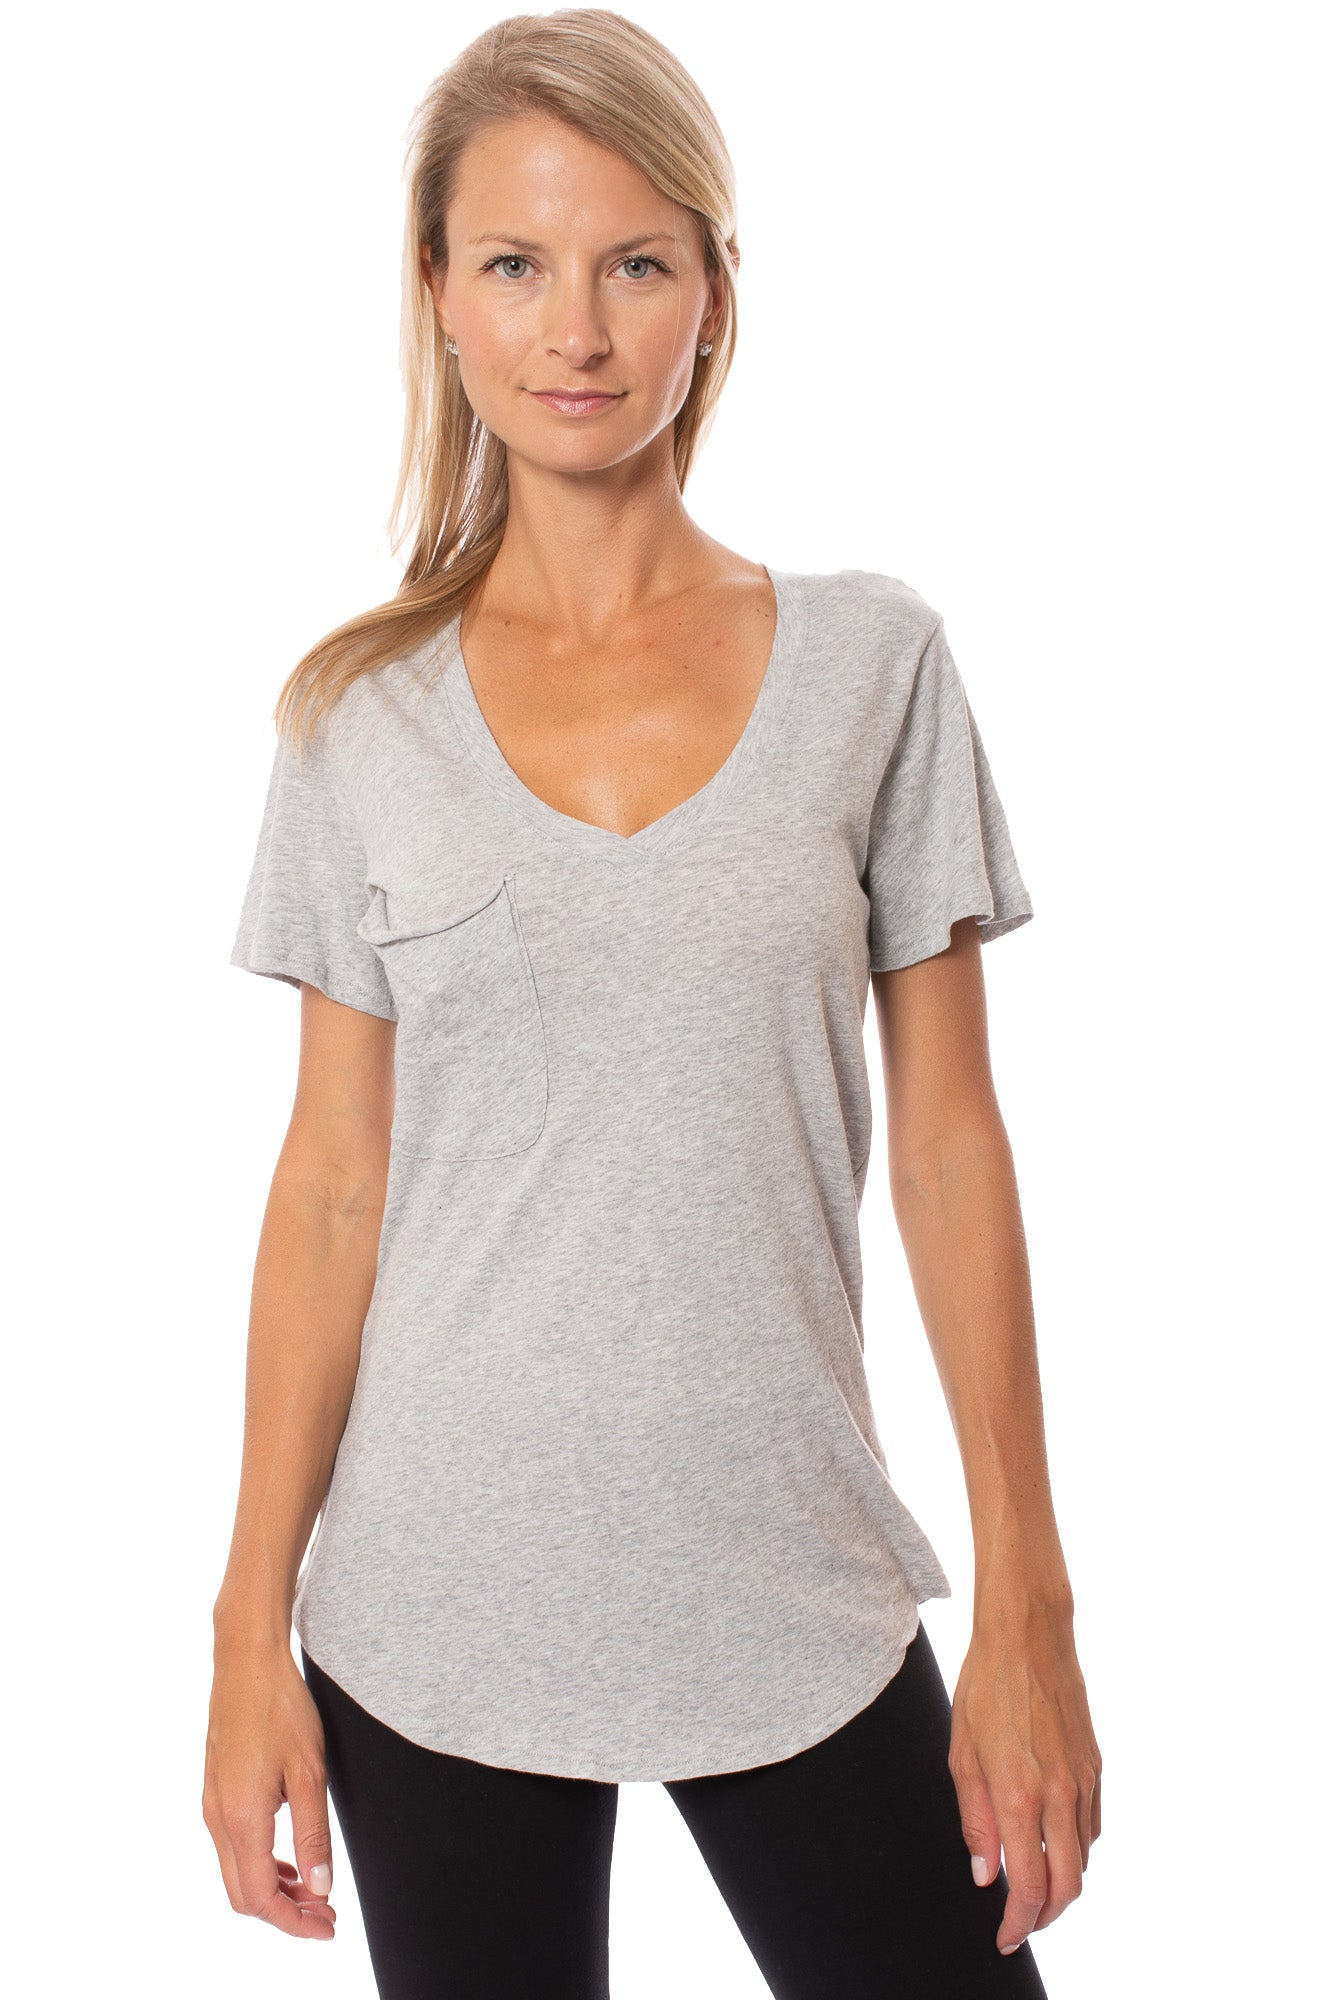 Bobi - Boyfriend Tee (539-07062, Heather Gray)